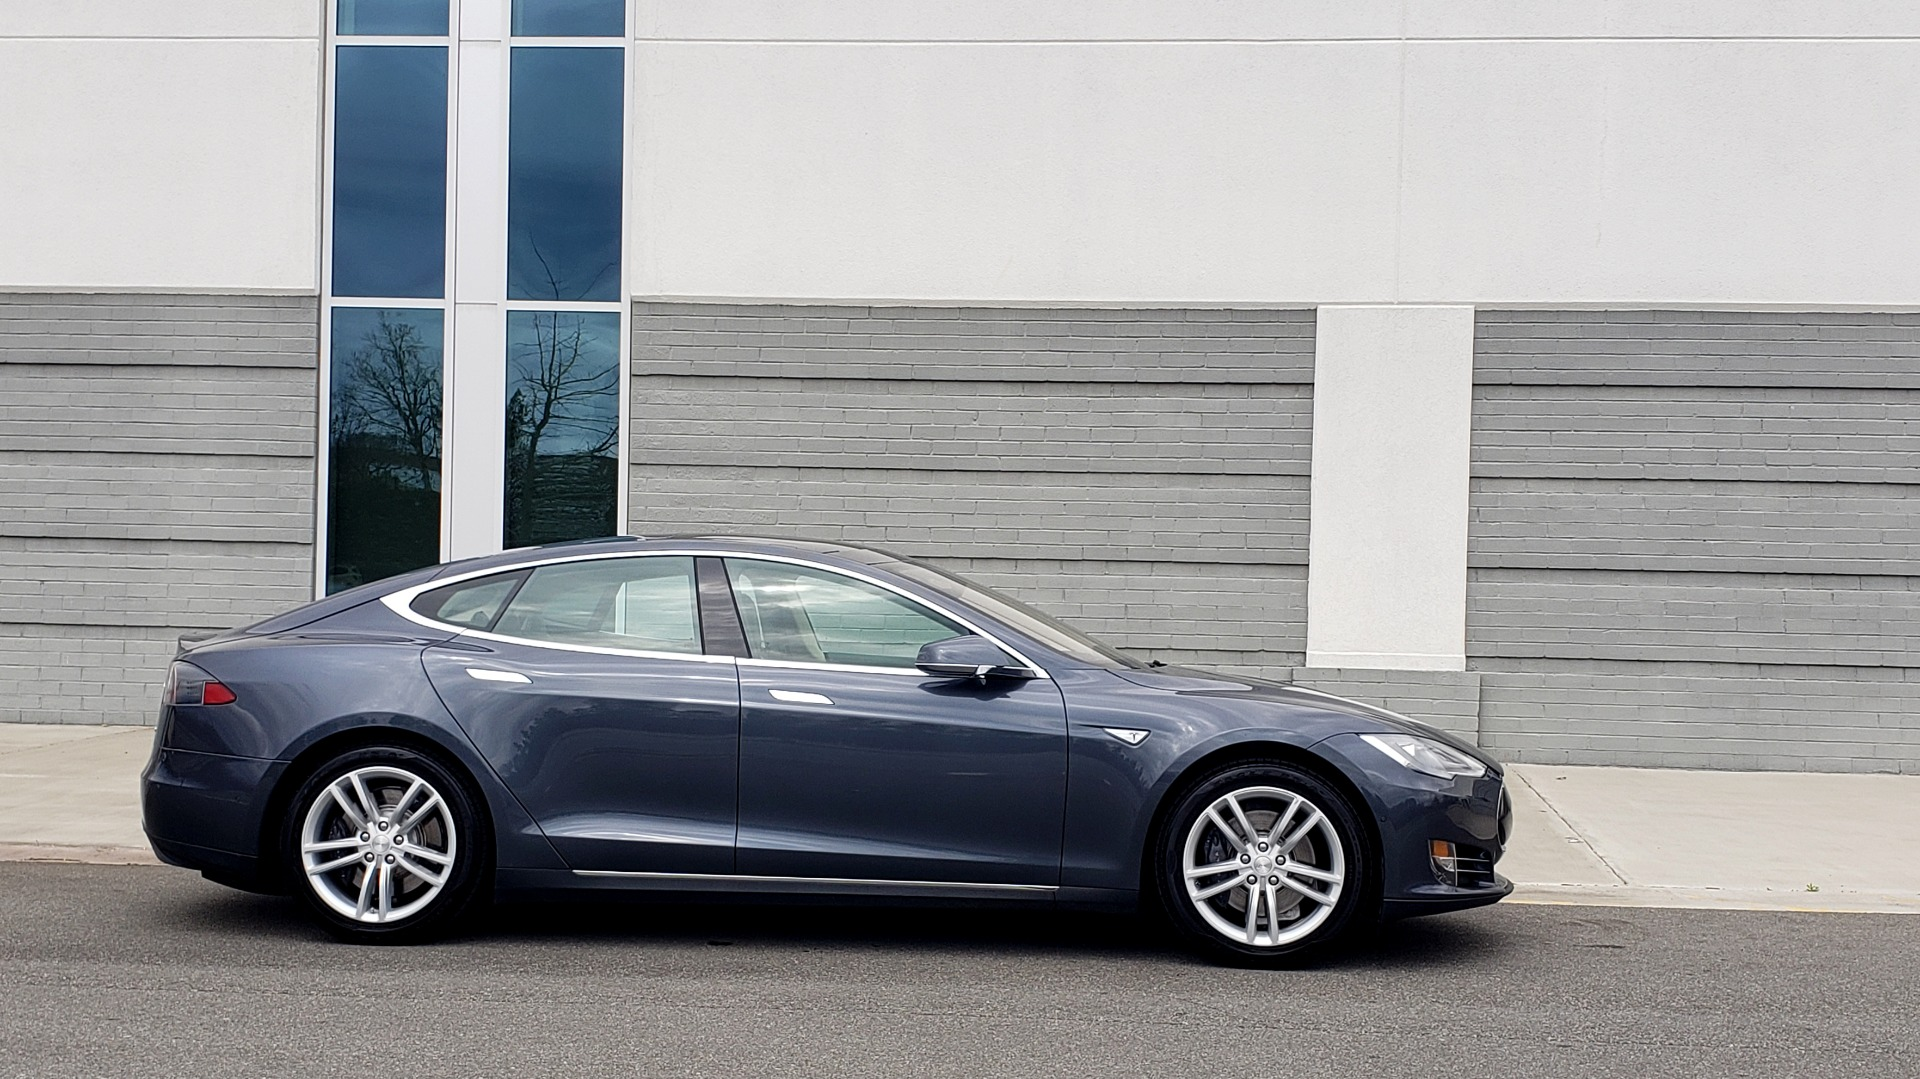 Used 2014 Tesla MODEL S 60 kWh BATTERY / TECH / NAV / SUBZERO / SUNROOF / REARVIEW for sale Sold at Formula Imports in Charlotte NC 28227 7